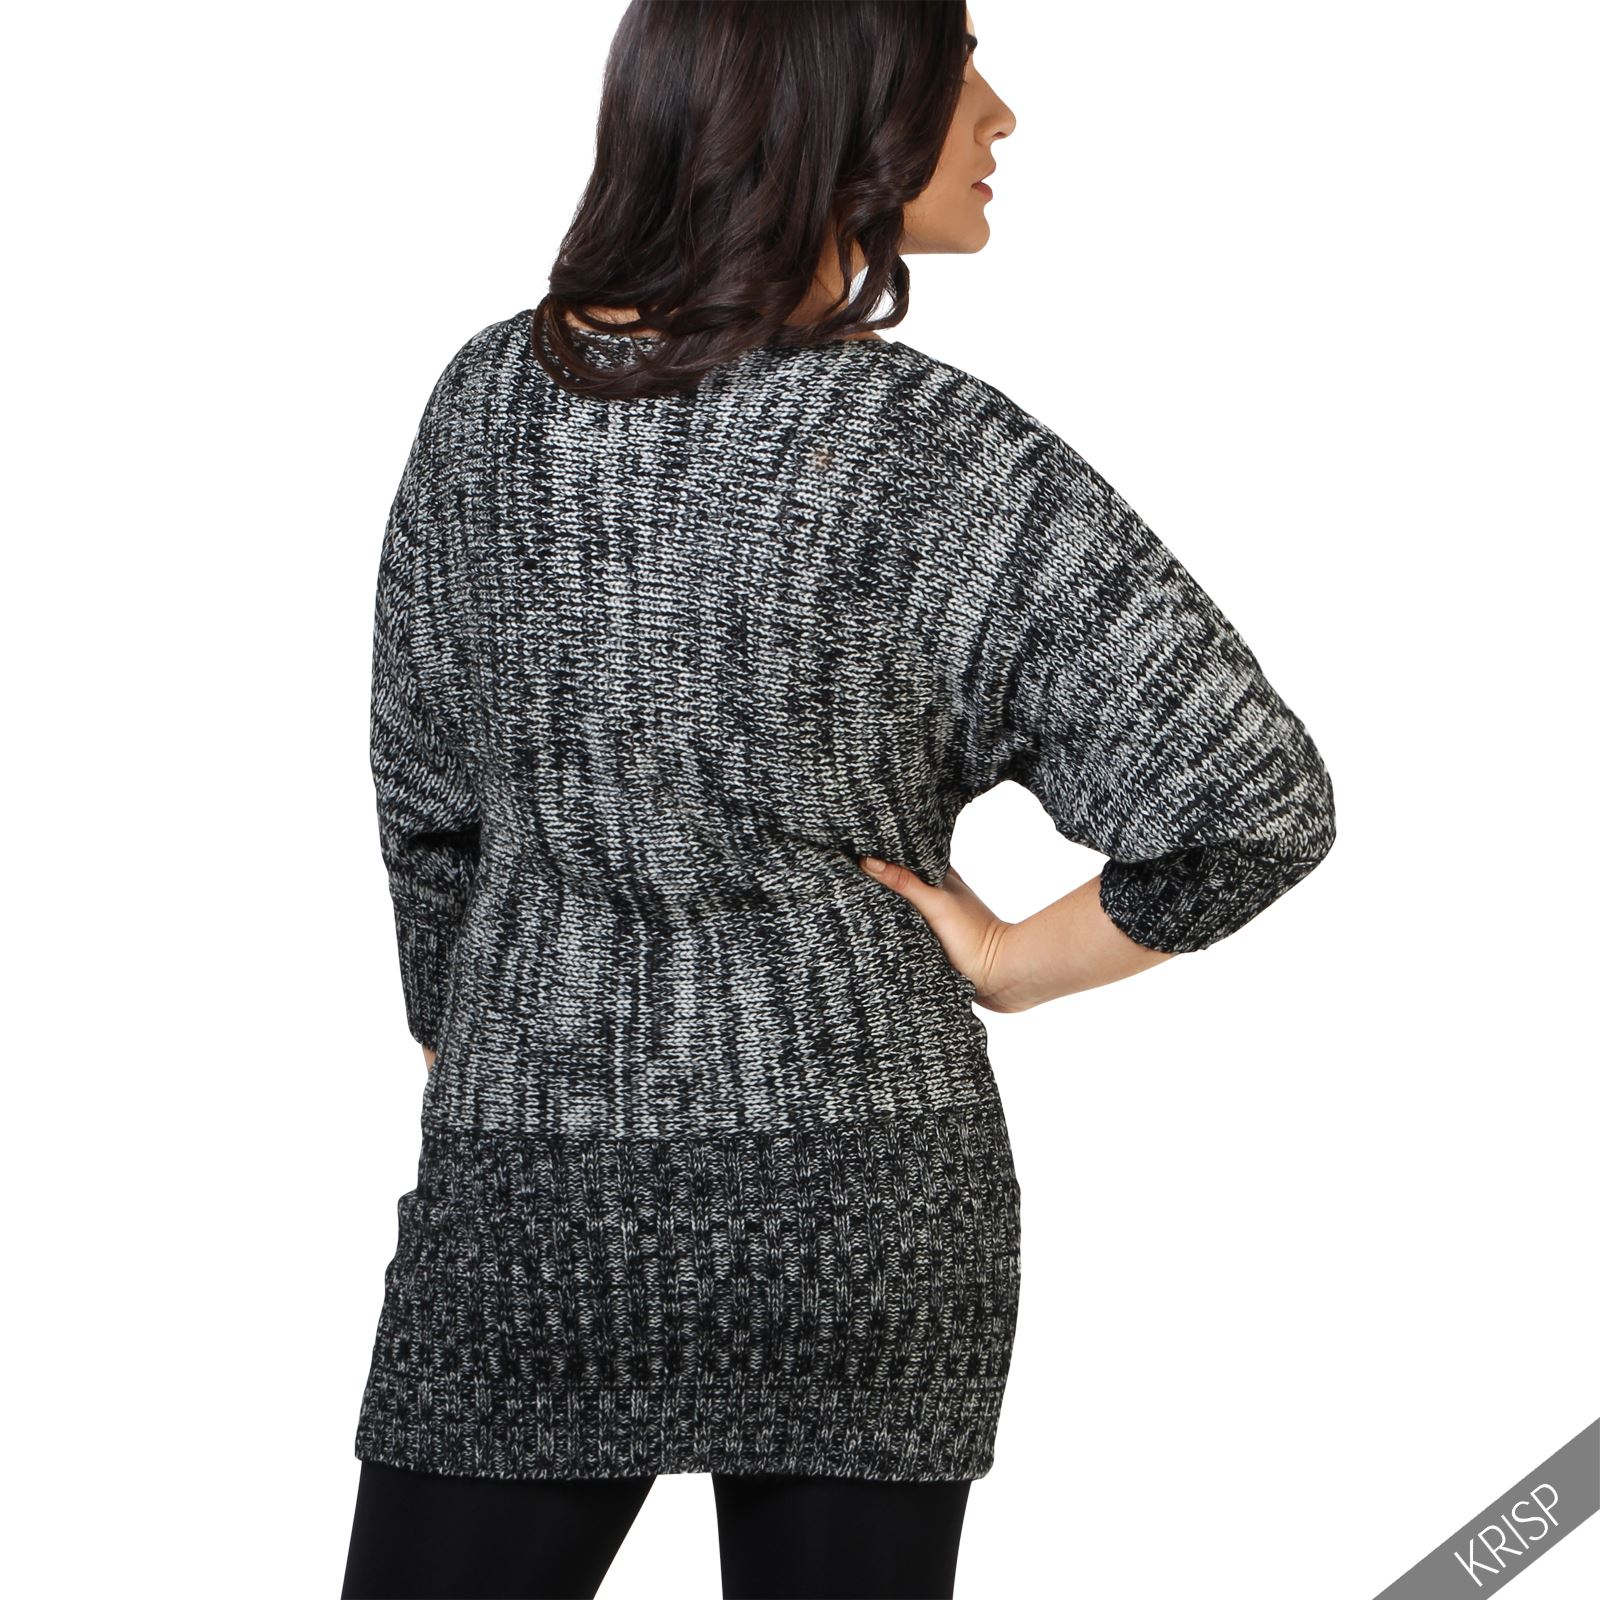 Women Jumpers from the best designers on YOOX. Discover our wide array of products and shop online: easy and free returns, secure payment and delivery in 48 hours! You can dress fashionably even on the coldest days – just wear your favourite jumper.